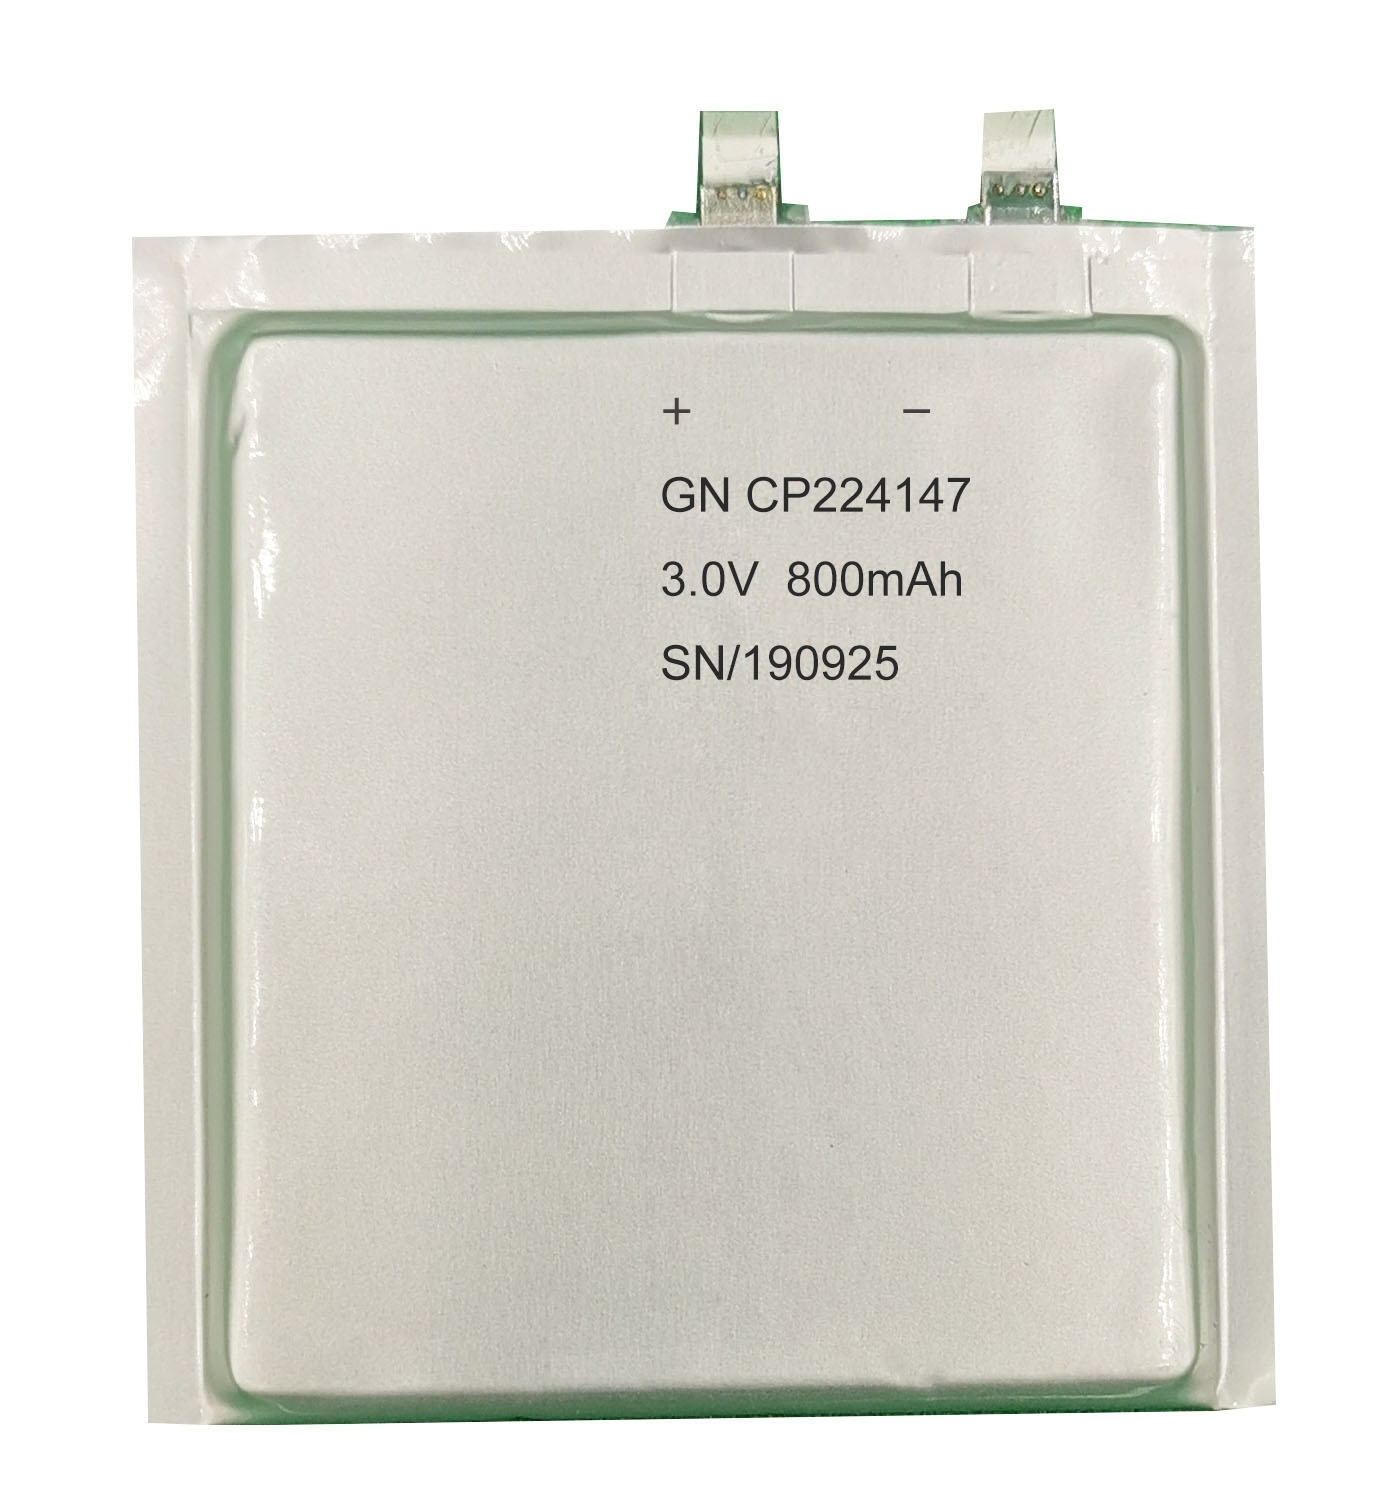 3V 800mAh CP224147 thin cell battery for personal RFID cards